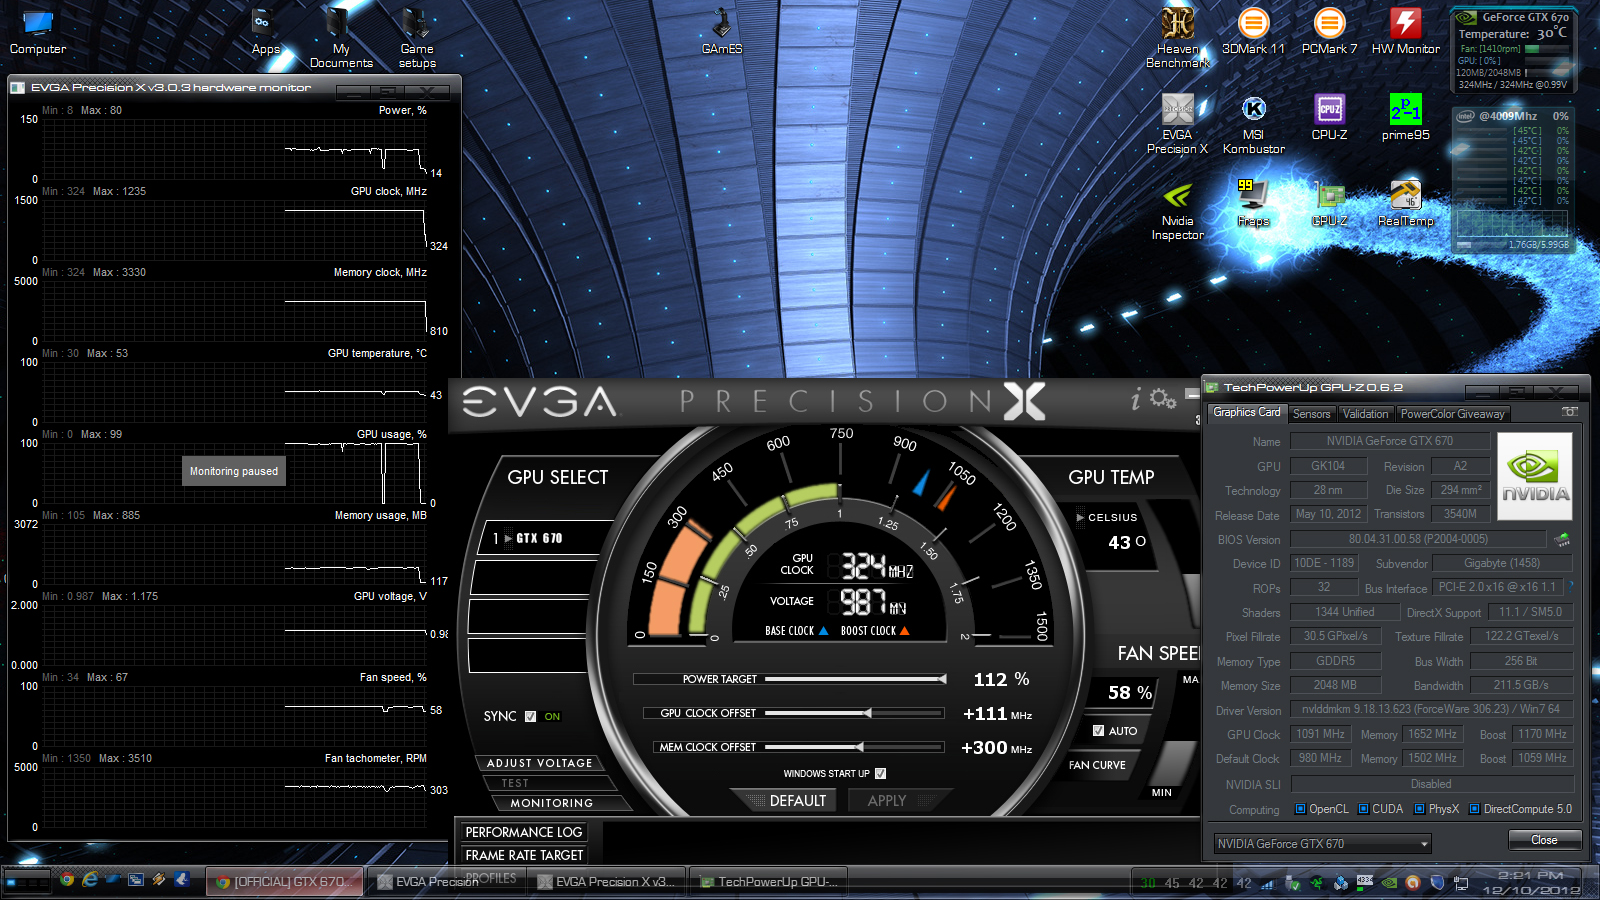 OFFICIAL] GTX 670 Overclocking - Page 124 - Overclock net